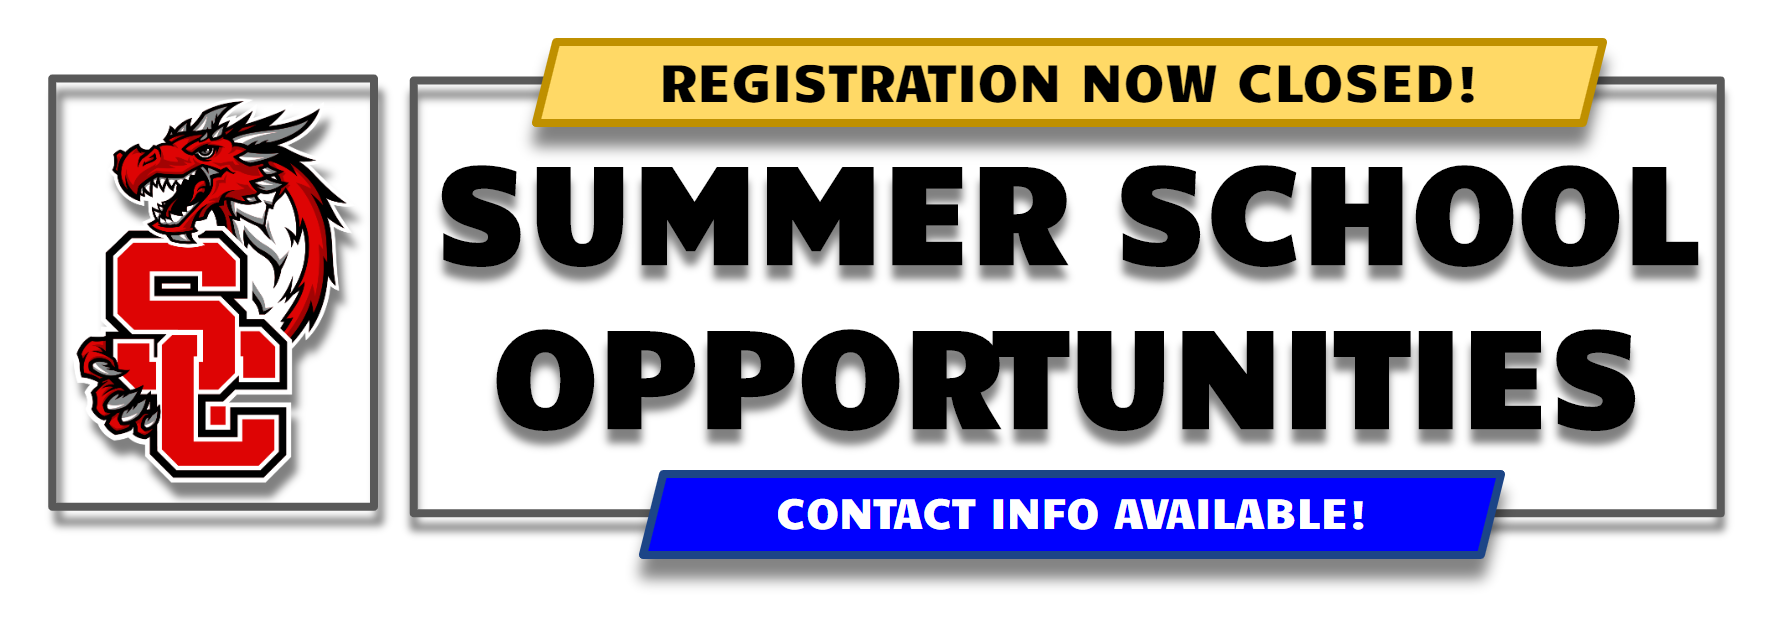 Banner with following text: Summer School Opportunities - Registration Now Closed - Contact Info Available